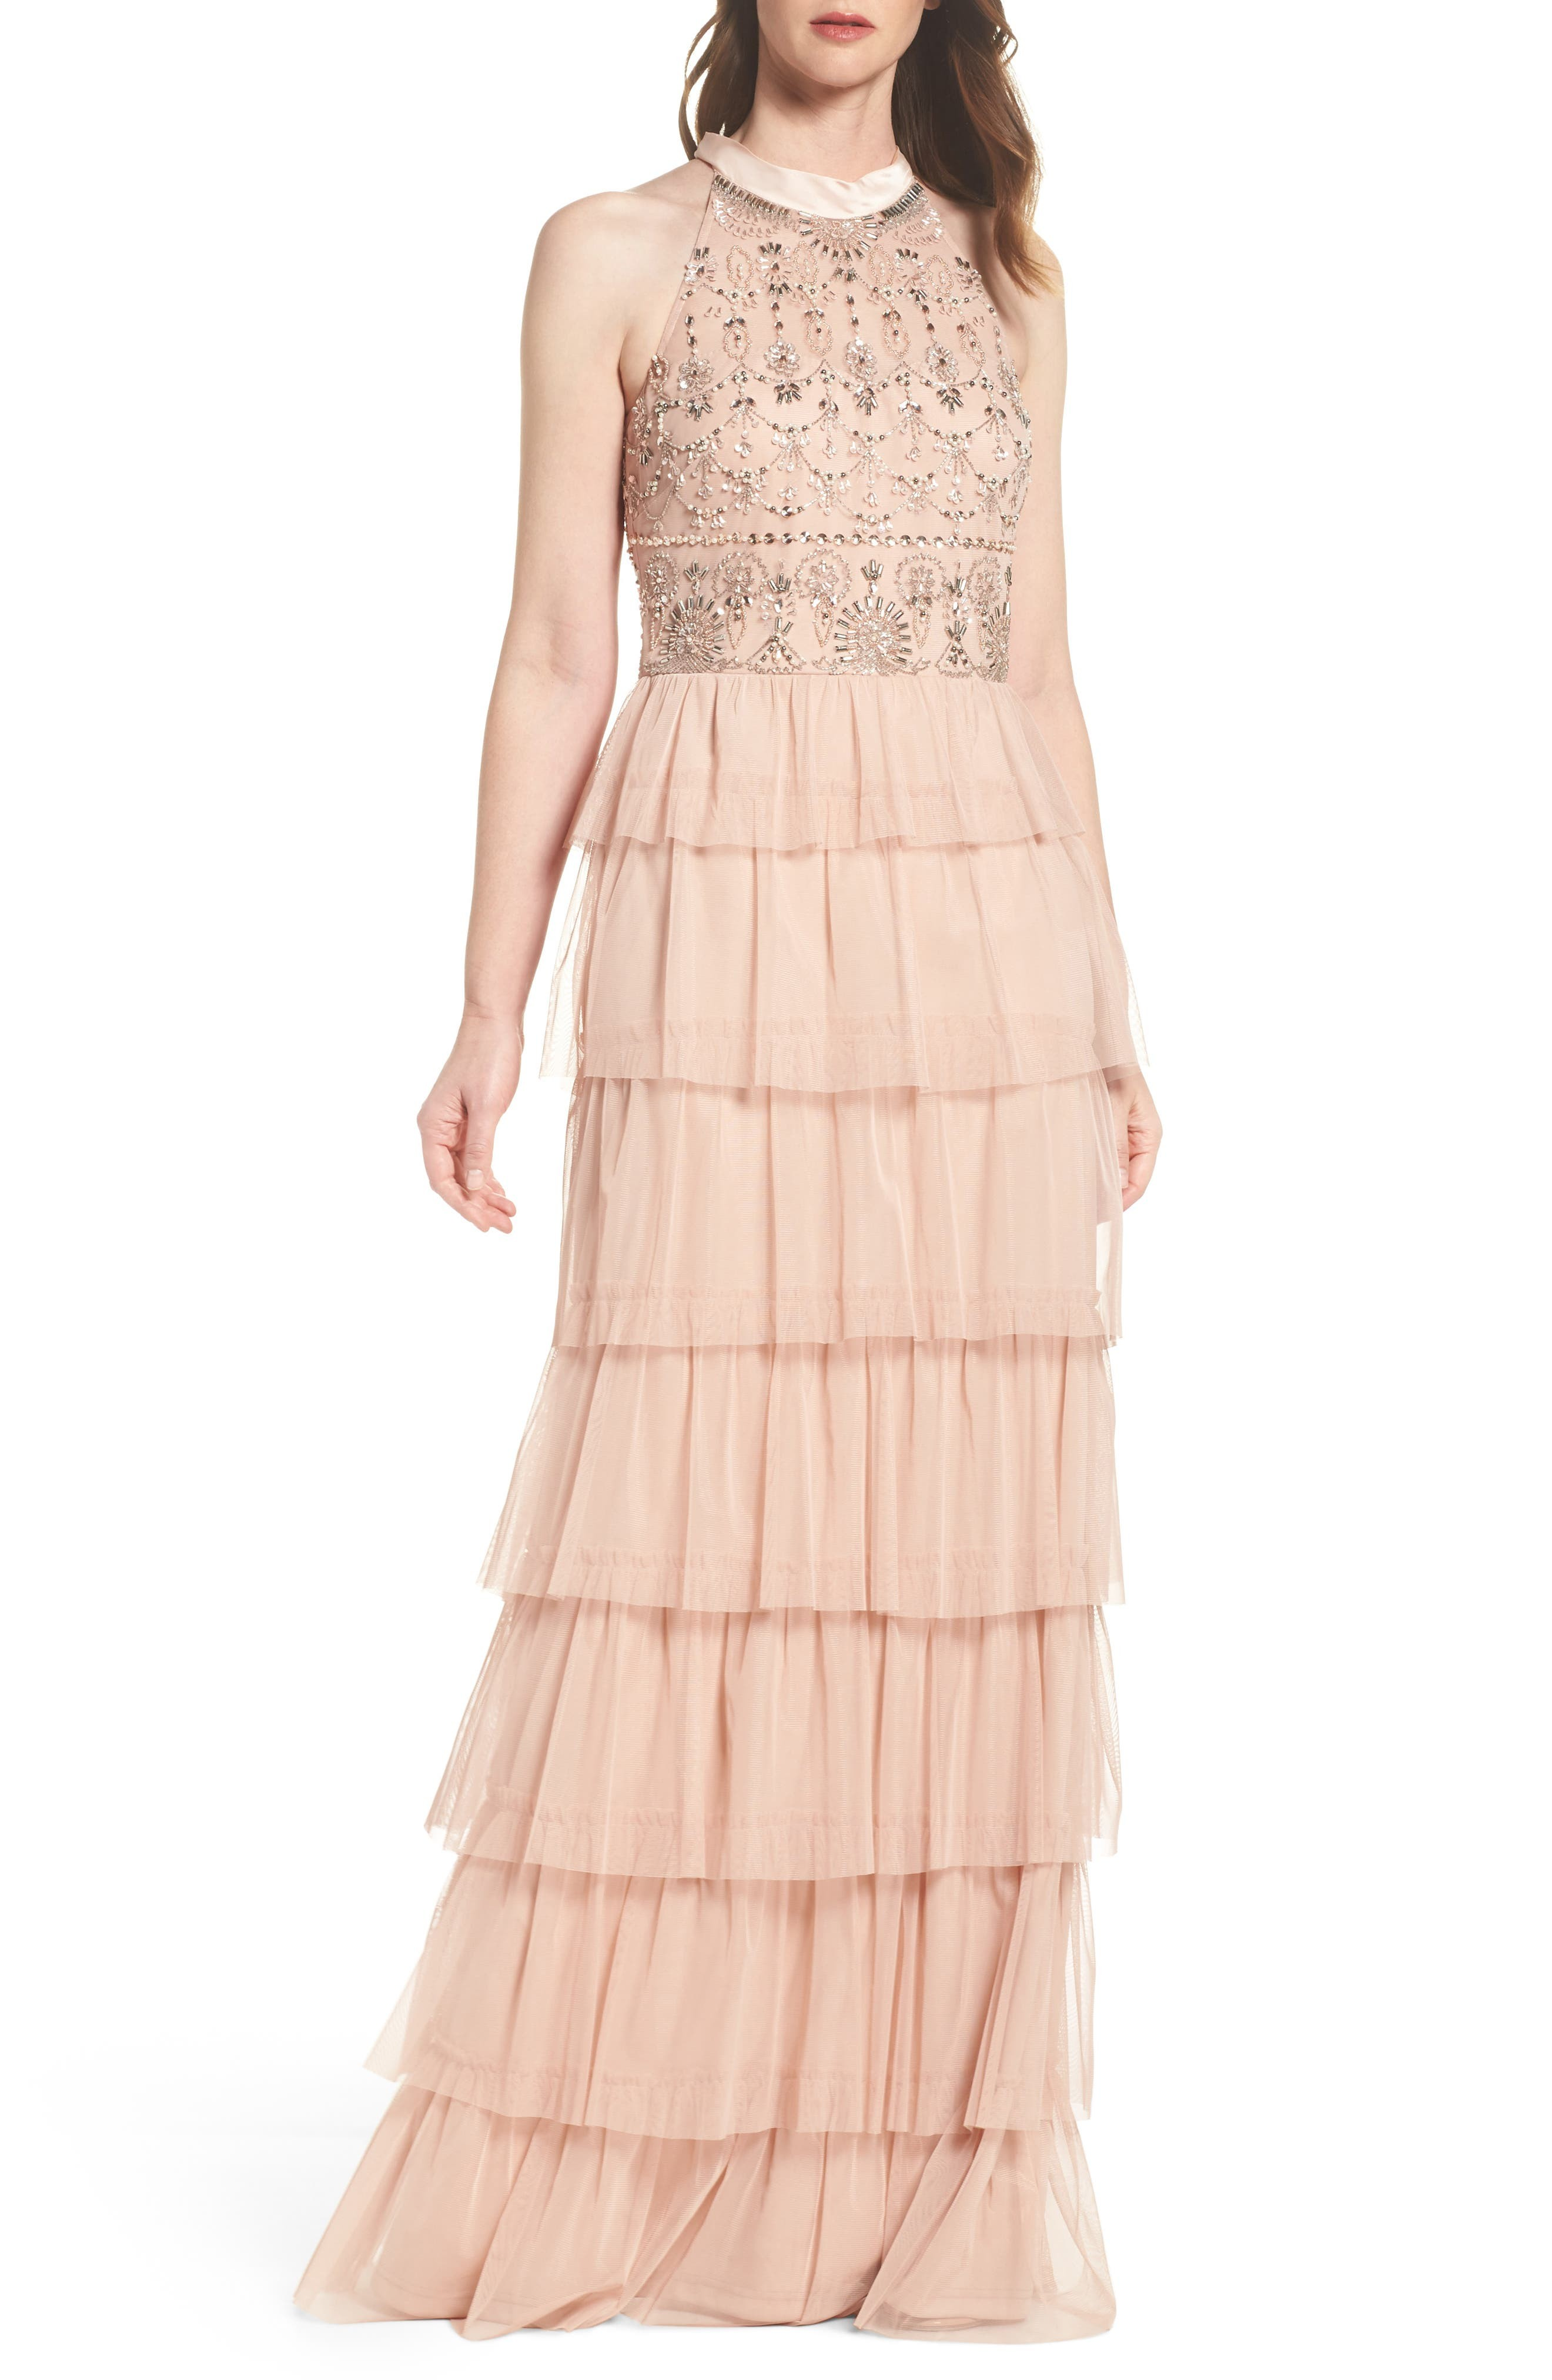 Wedding guest dresses for spring weddings ombrellifo Image collections